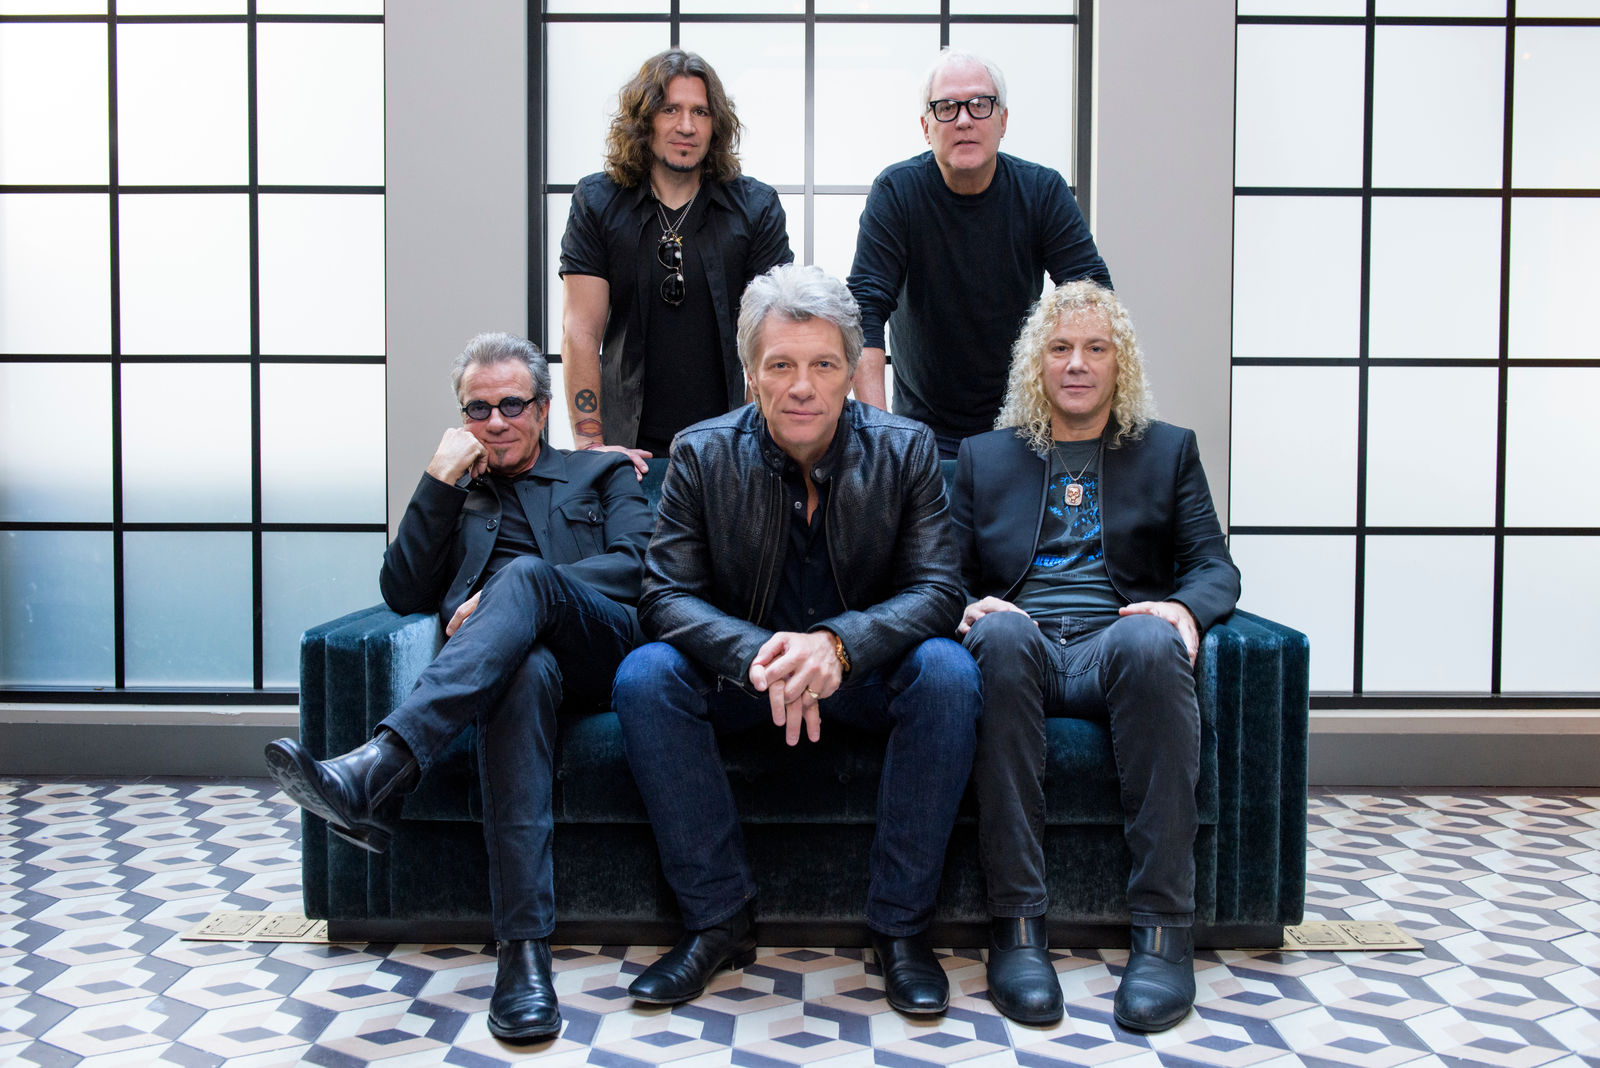 "FILE - In this Oct. 19, 2016 file photo, members of Bon Jovi front row from left, Tico Torres, Jon Bon Jovi, David Bryan, back row from left, Phil X, and Hugh McDonald pose for a portrait in promotion of their new album ""This House is Not for Sale"" in New York. (Photo by Drew Gurian/Invision/AP, File)"